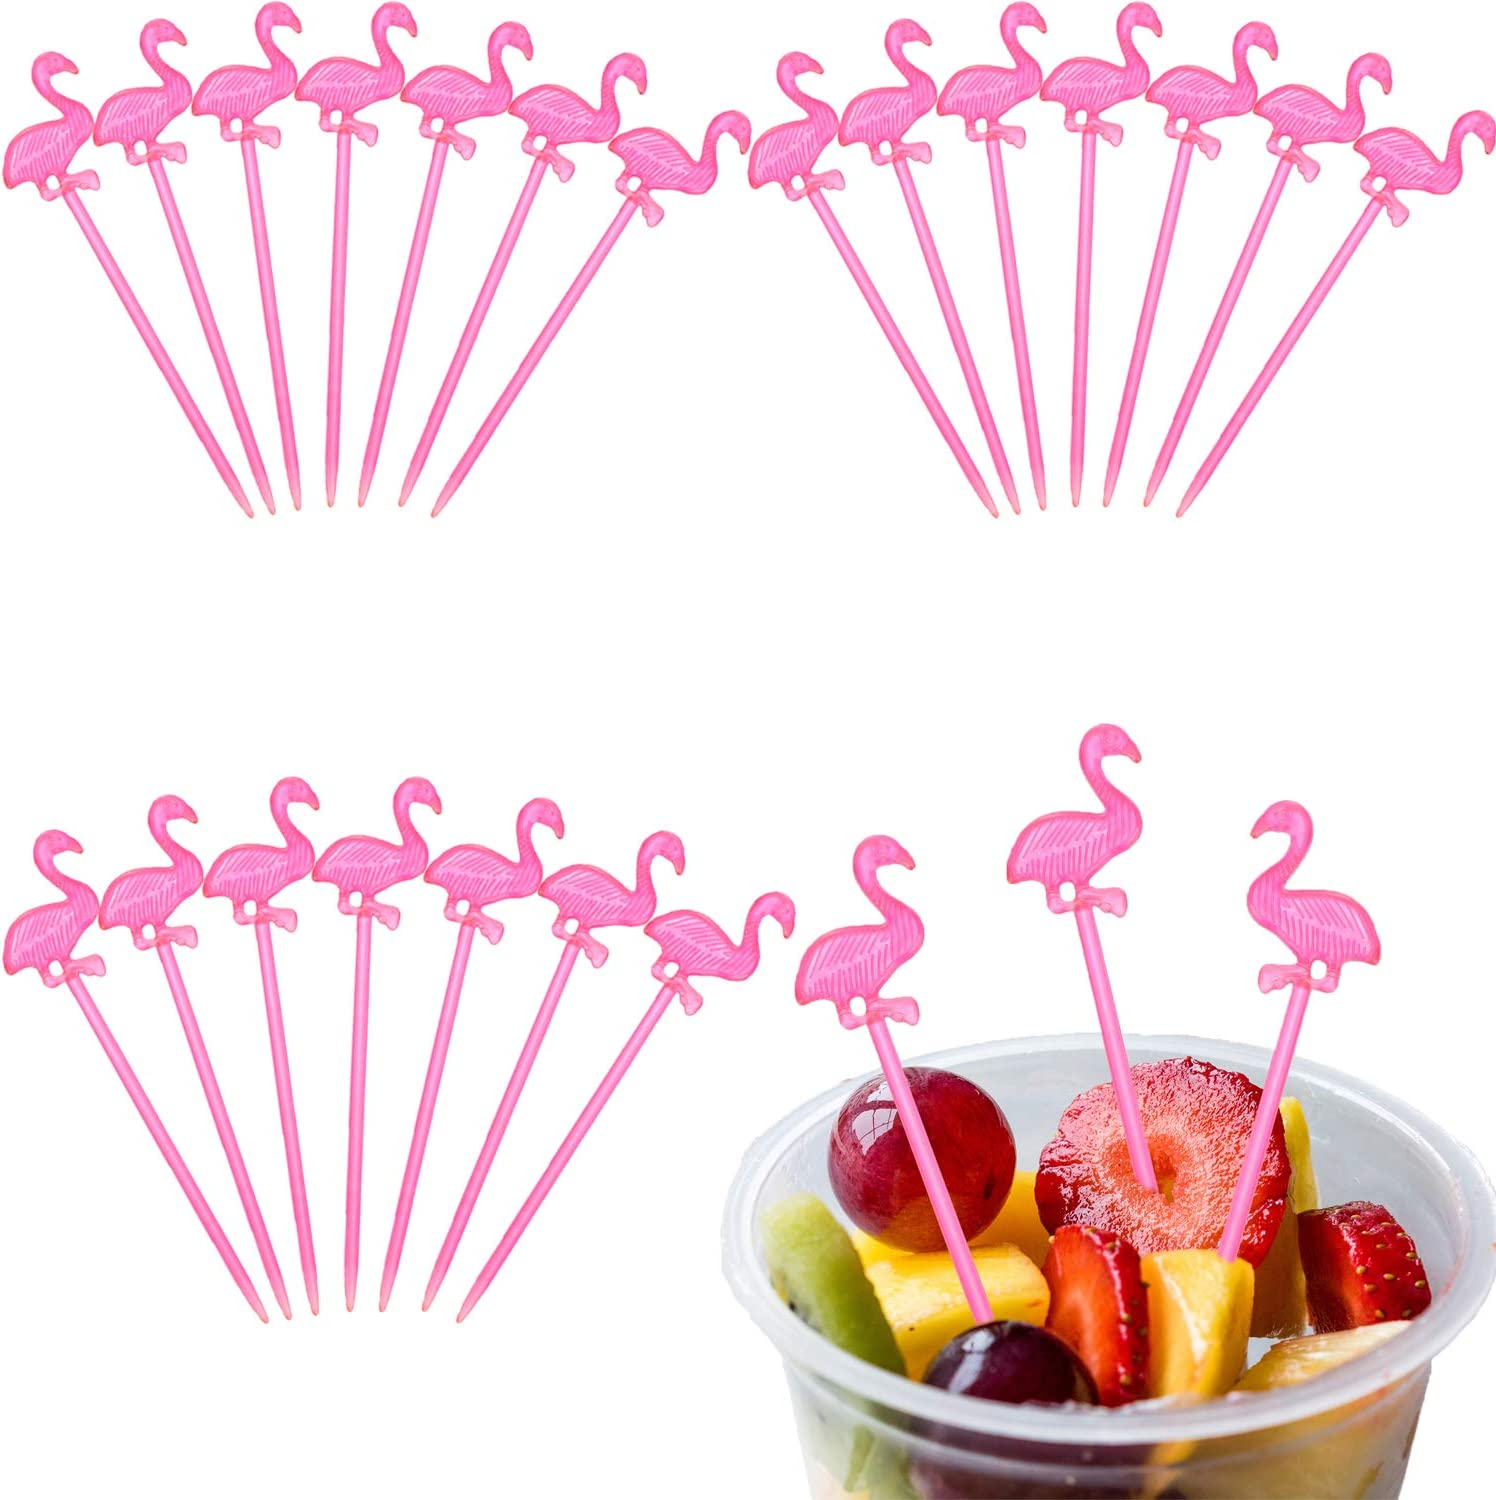 300 Pieces Plastic Picks Cocktail Picks Appetizer Picks Plastic Drink Picks for Tropical Party Decoration and Supplies (Flamingo Shape)